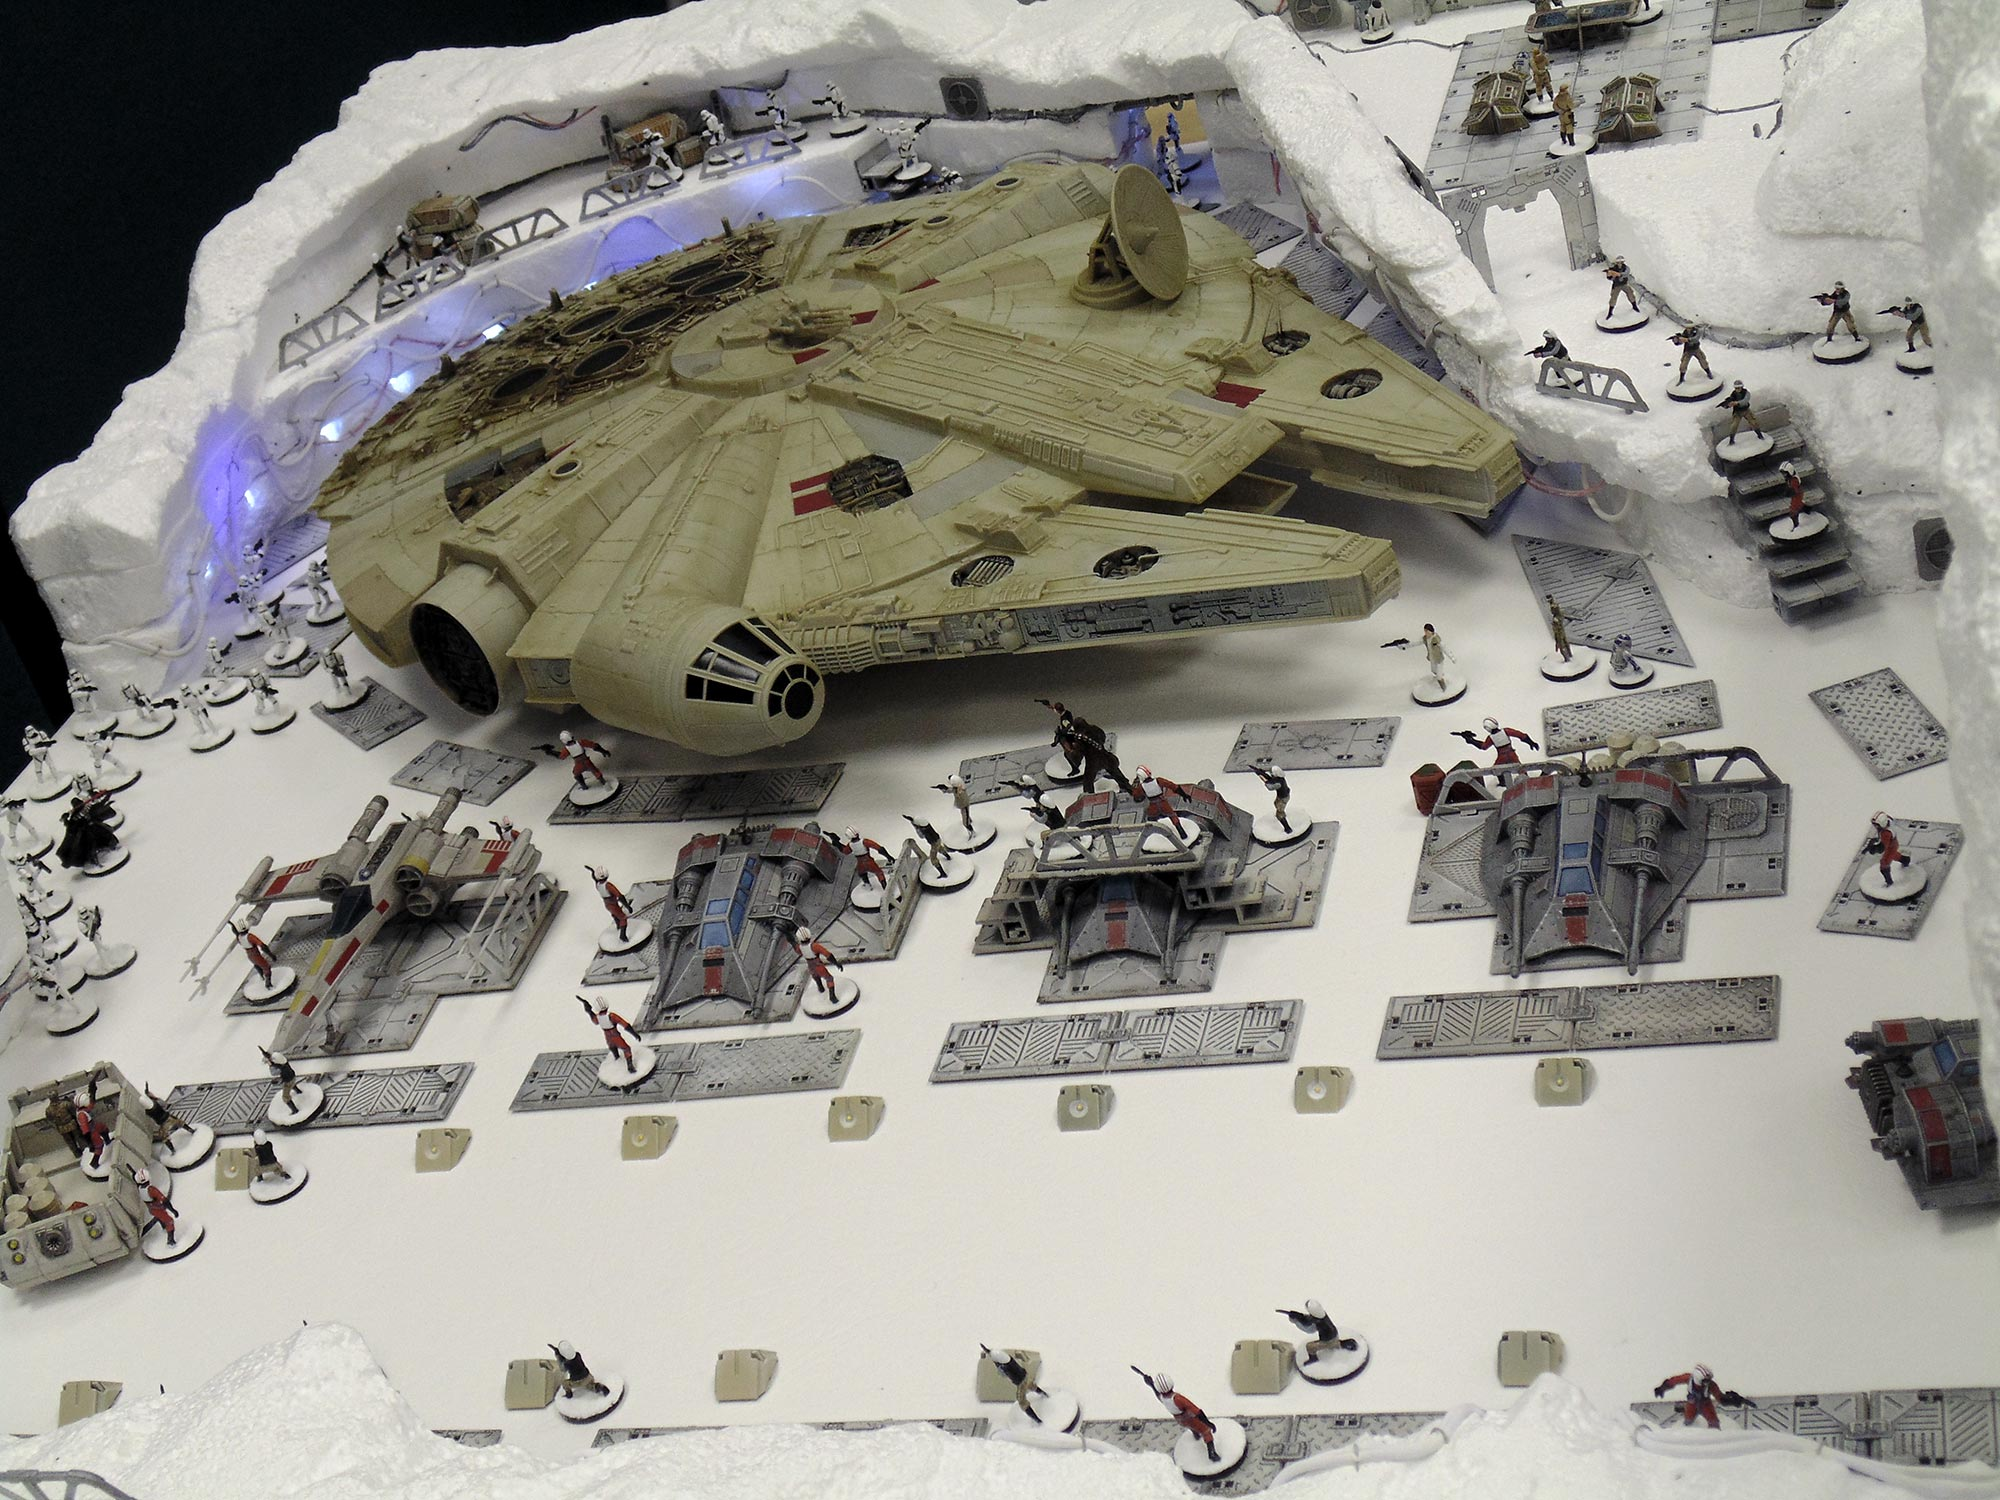 star-wars-battle-of-hoth-recreated-as-tabletop-gaming-table